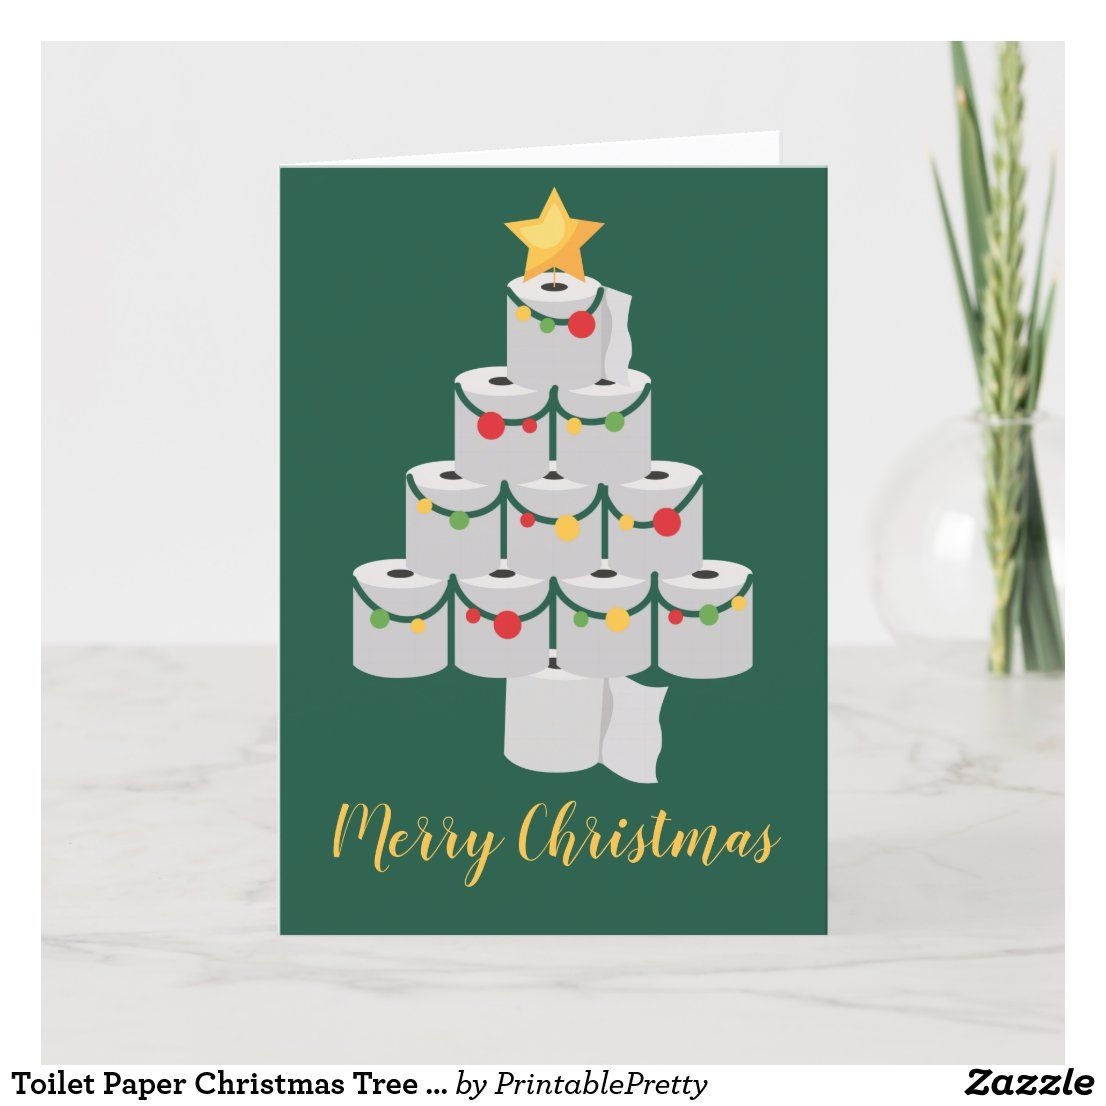 Toilet Paper Christmas Tree Funny 2020 Holiday Card Zazzle Com In 2020 Paper Christmas Tree Holiday Design Card Holiday Cards